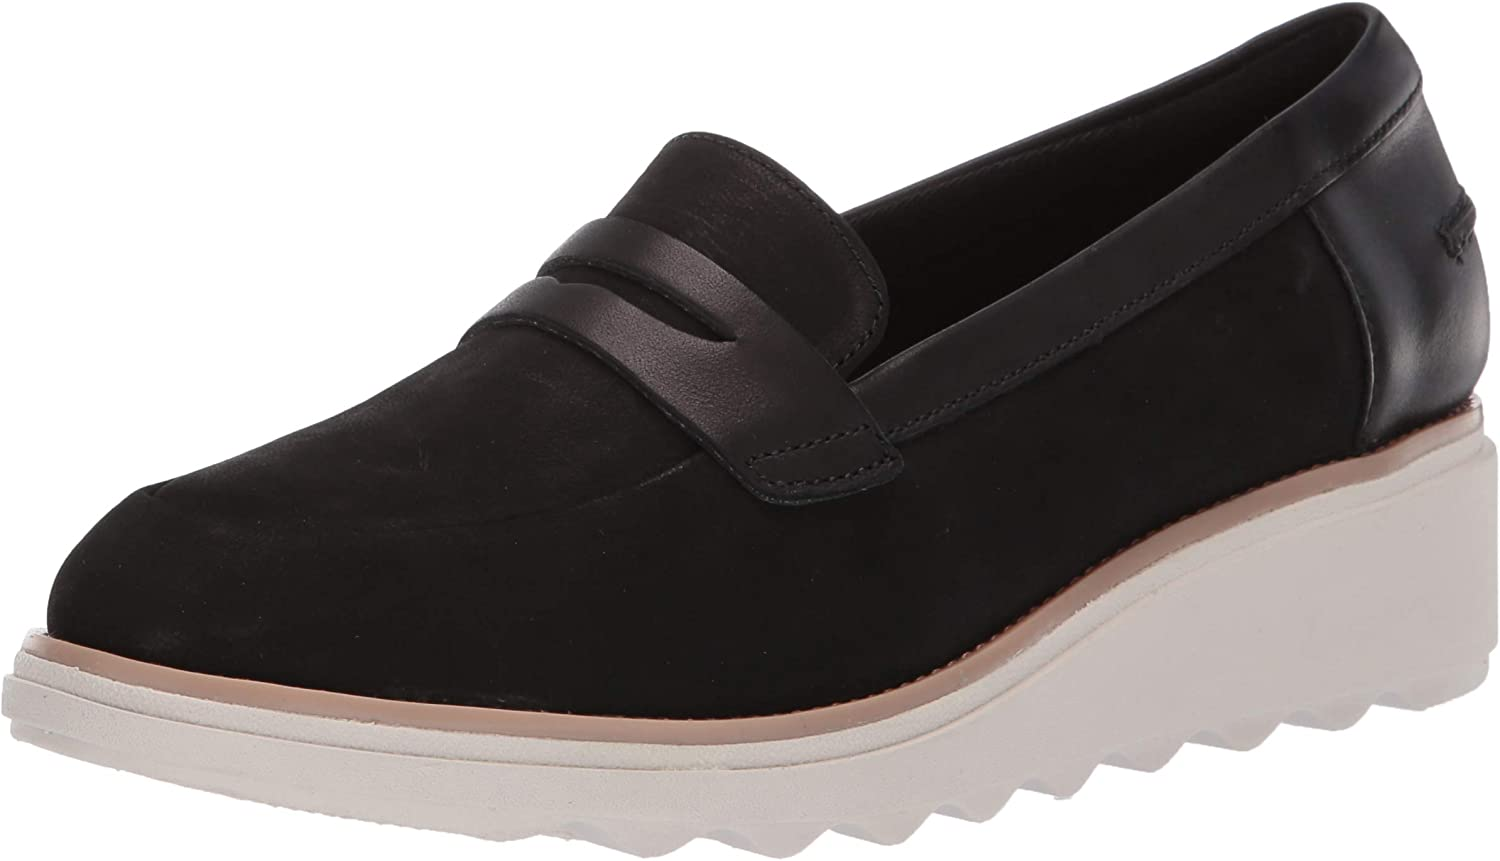 Clarks Womens Sharon Ranch Loafer